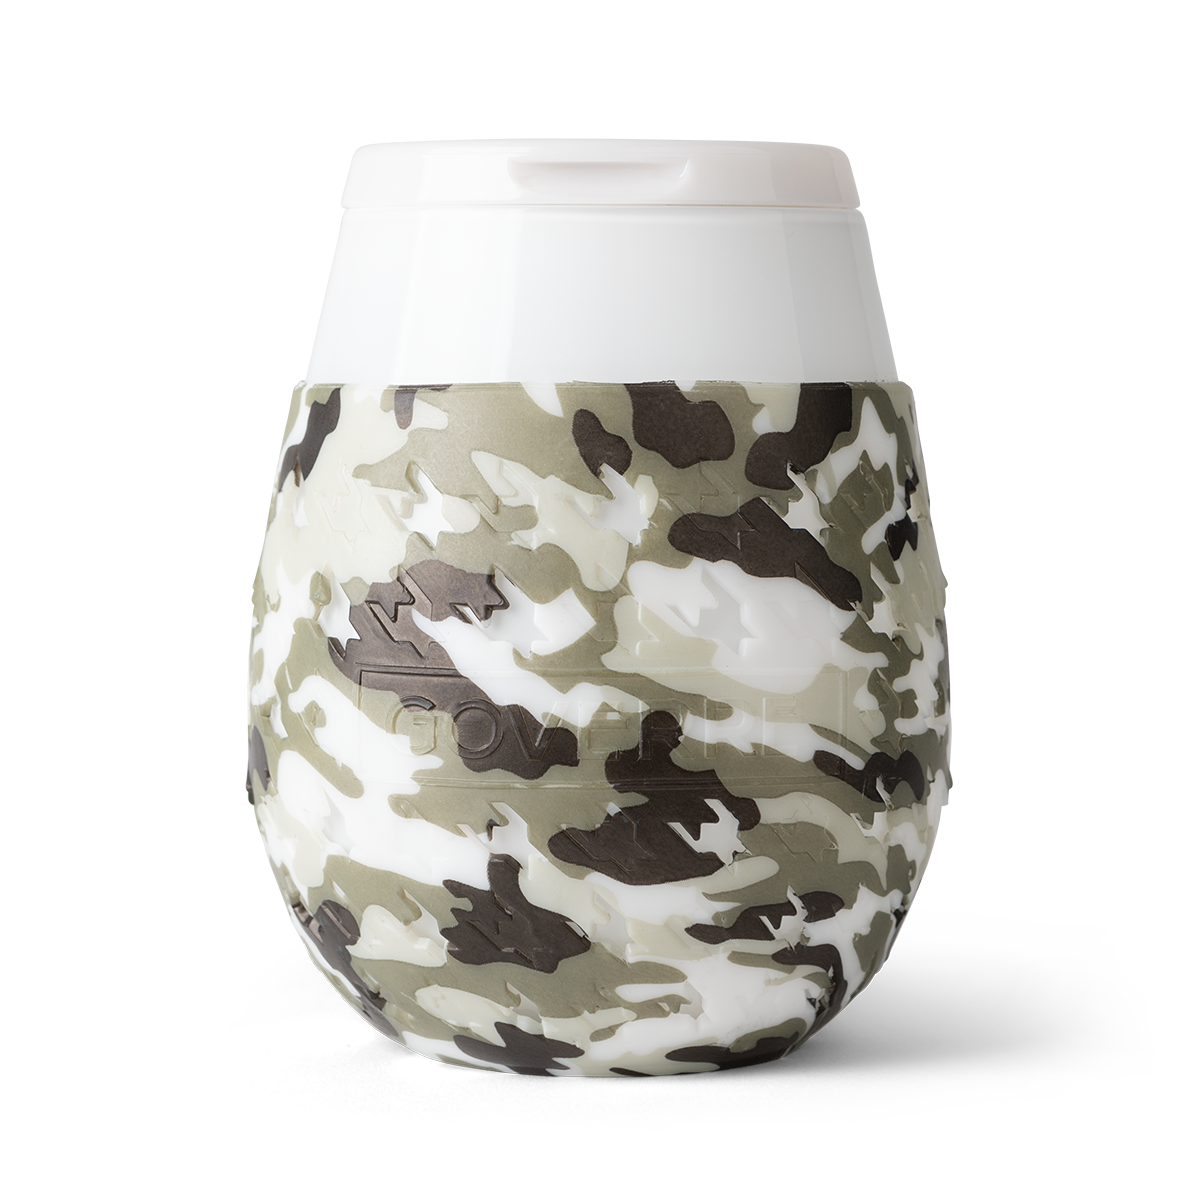 Goverre Stemless Wine Glass in Camo-close up.